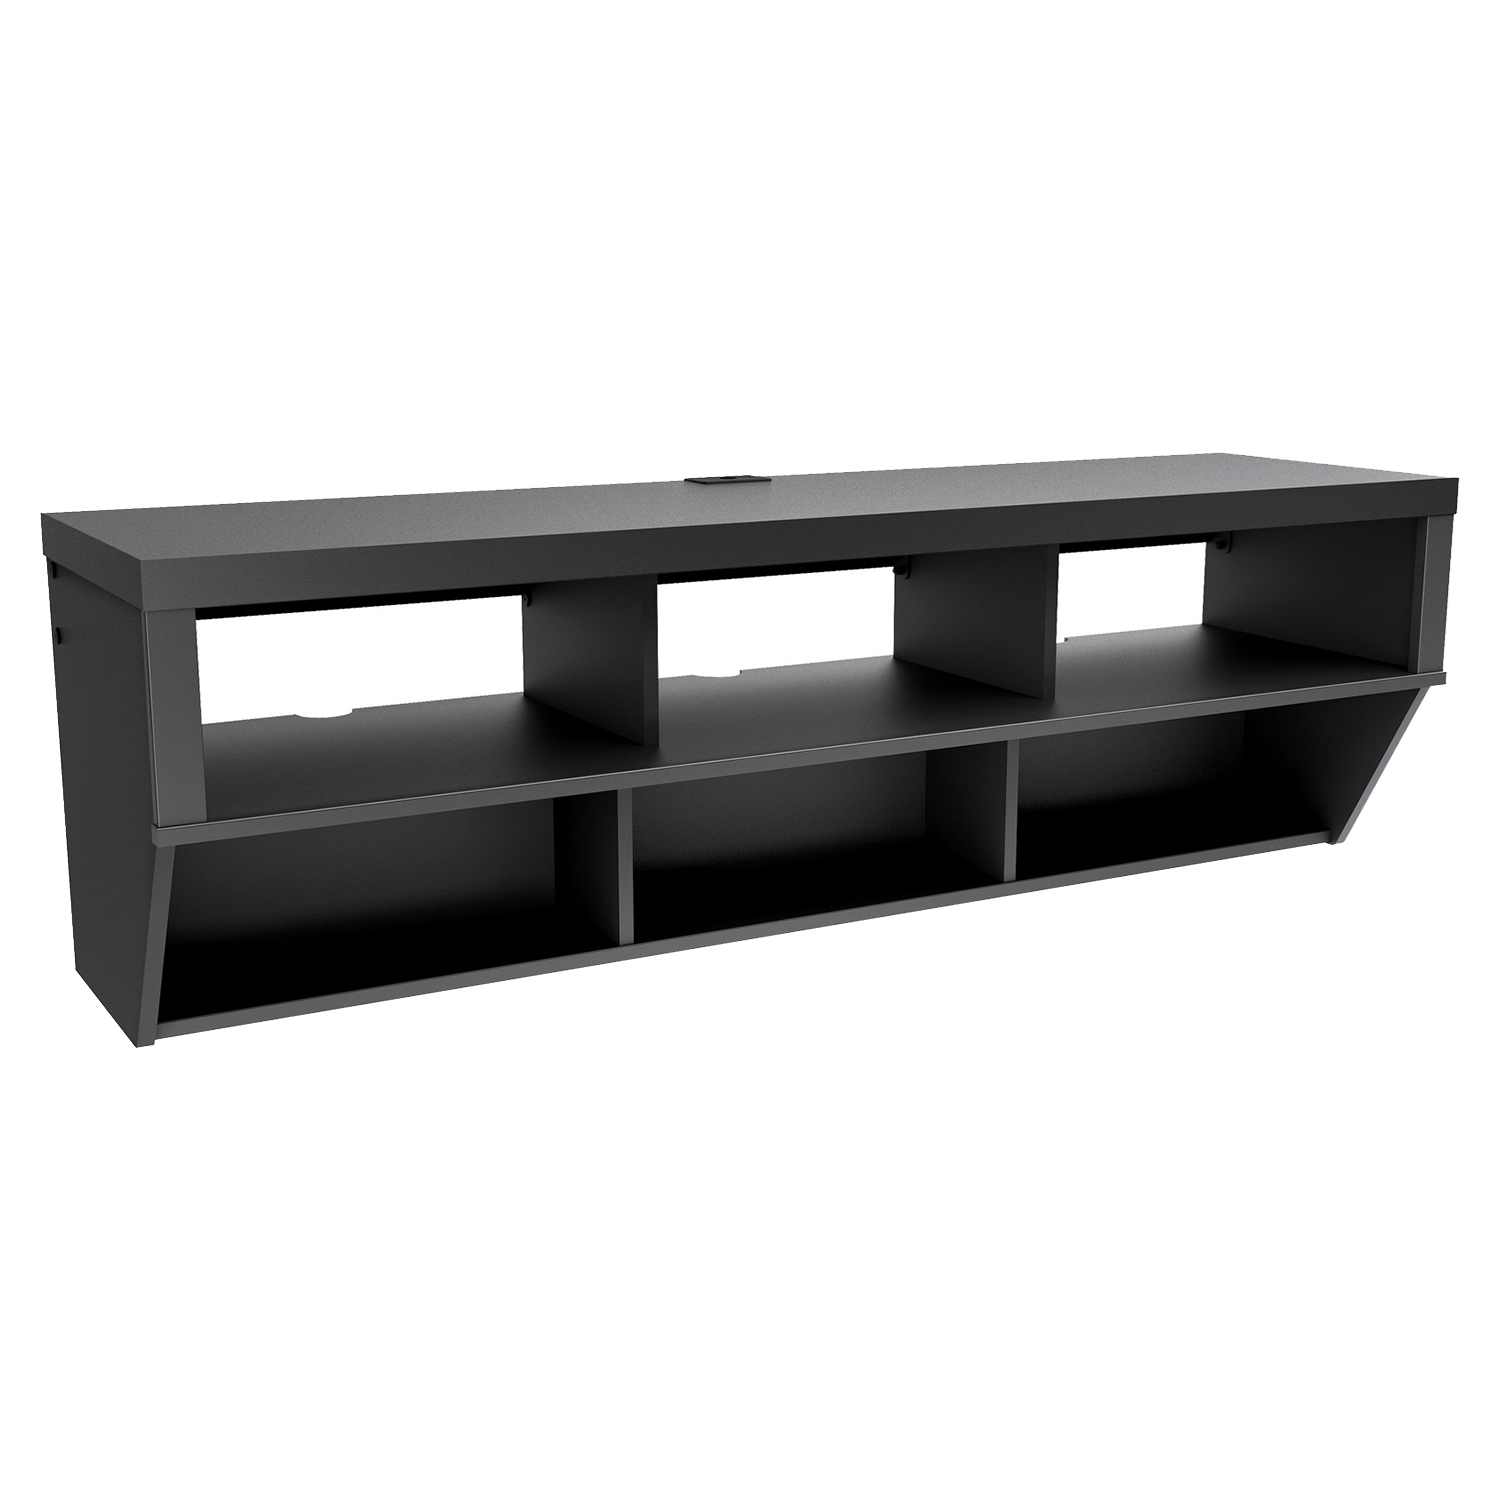 Series 9 Designer 58 Inch Wide Wall Mounted Audio Video - Black